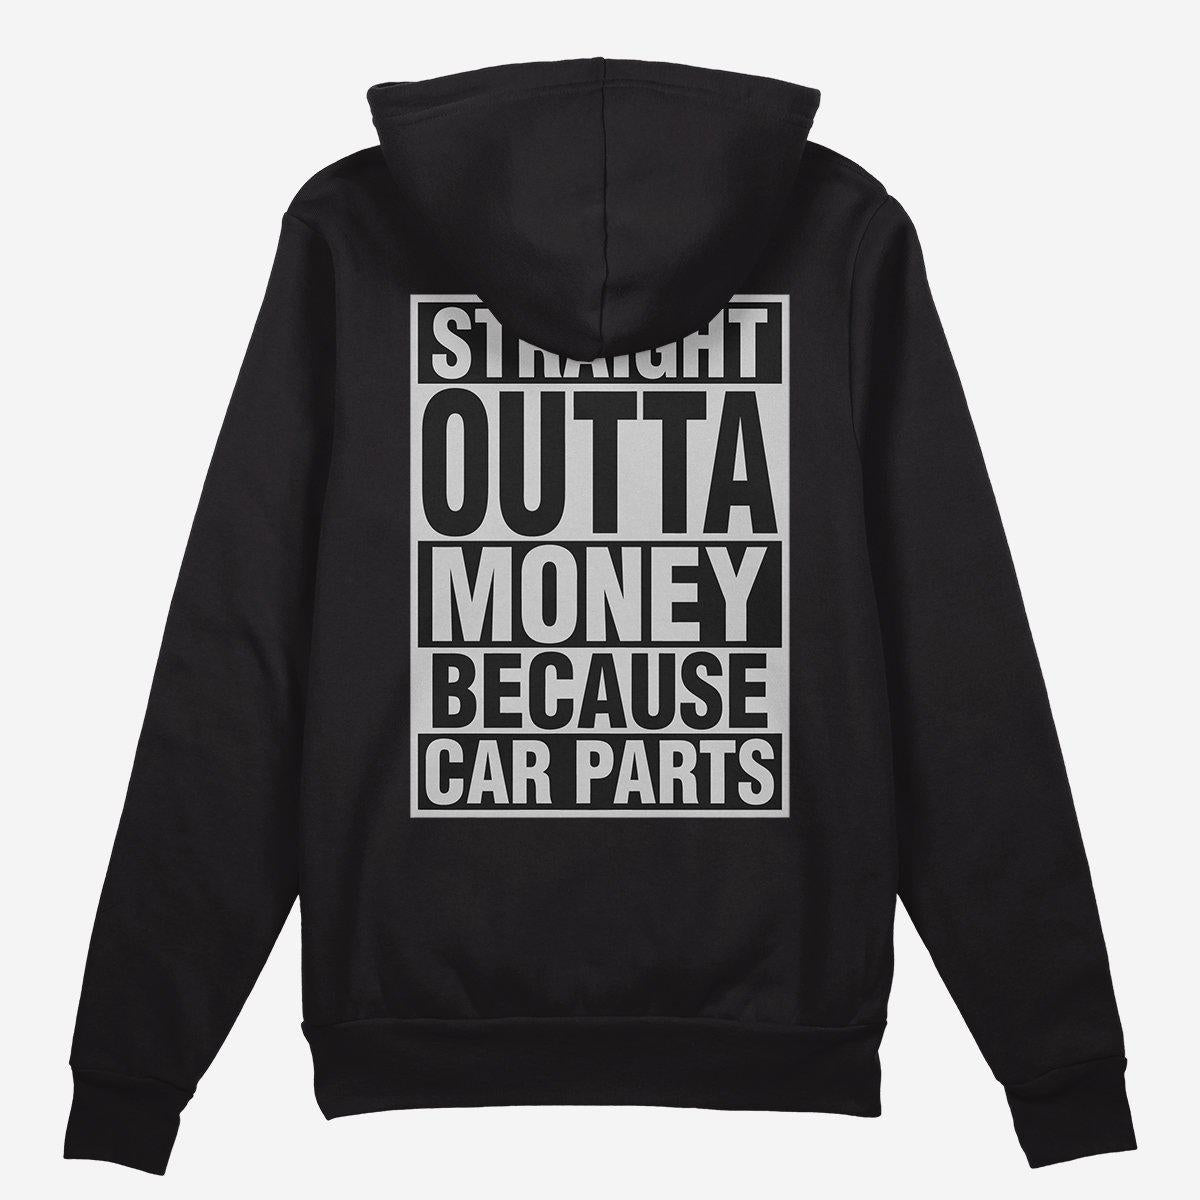 Straight Outta Money Because Car Parts Car Hoodie - Black.